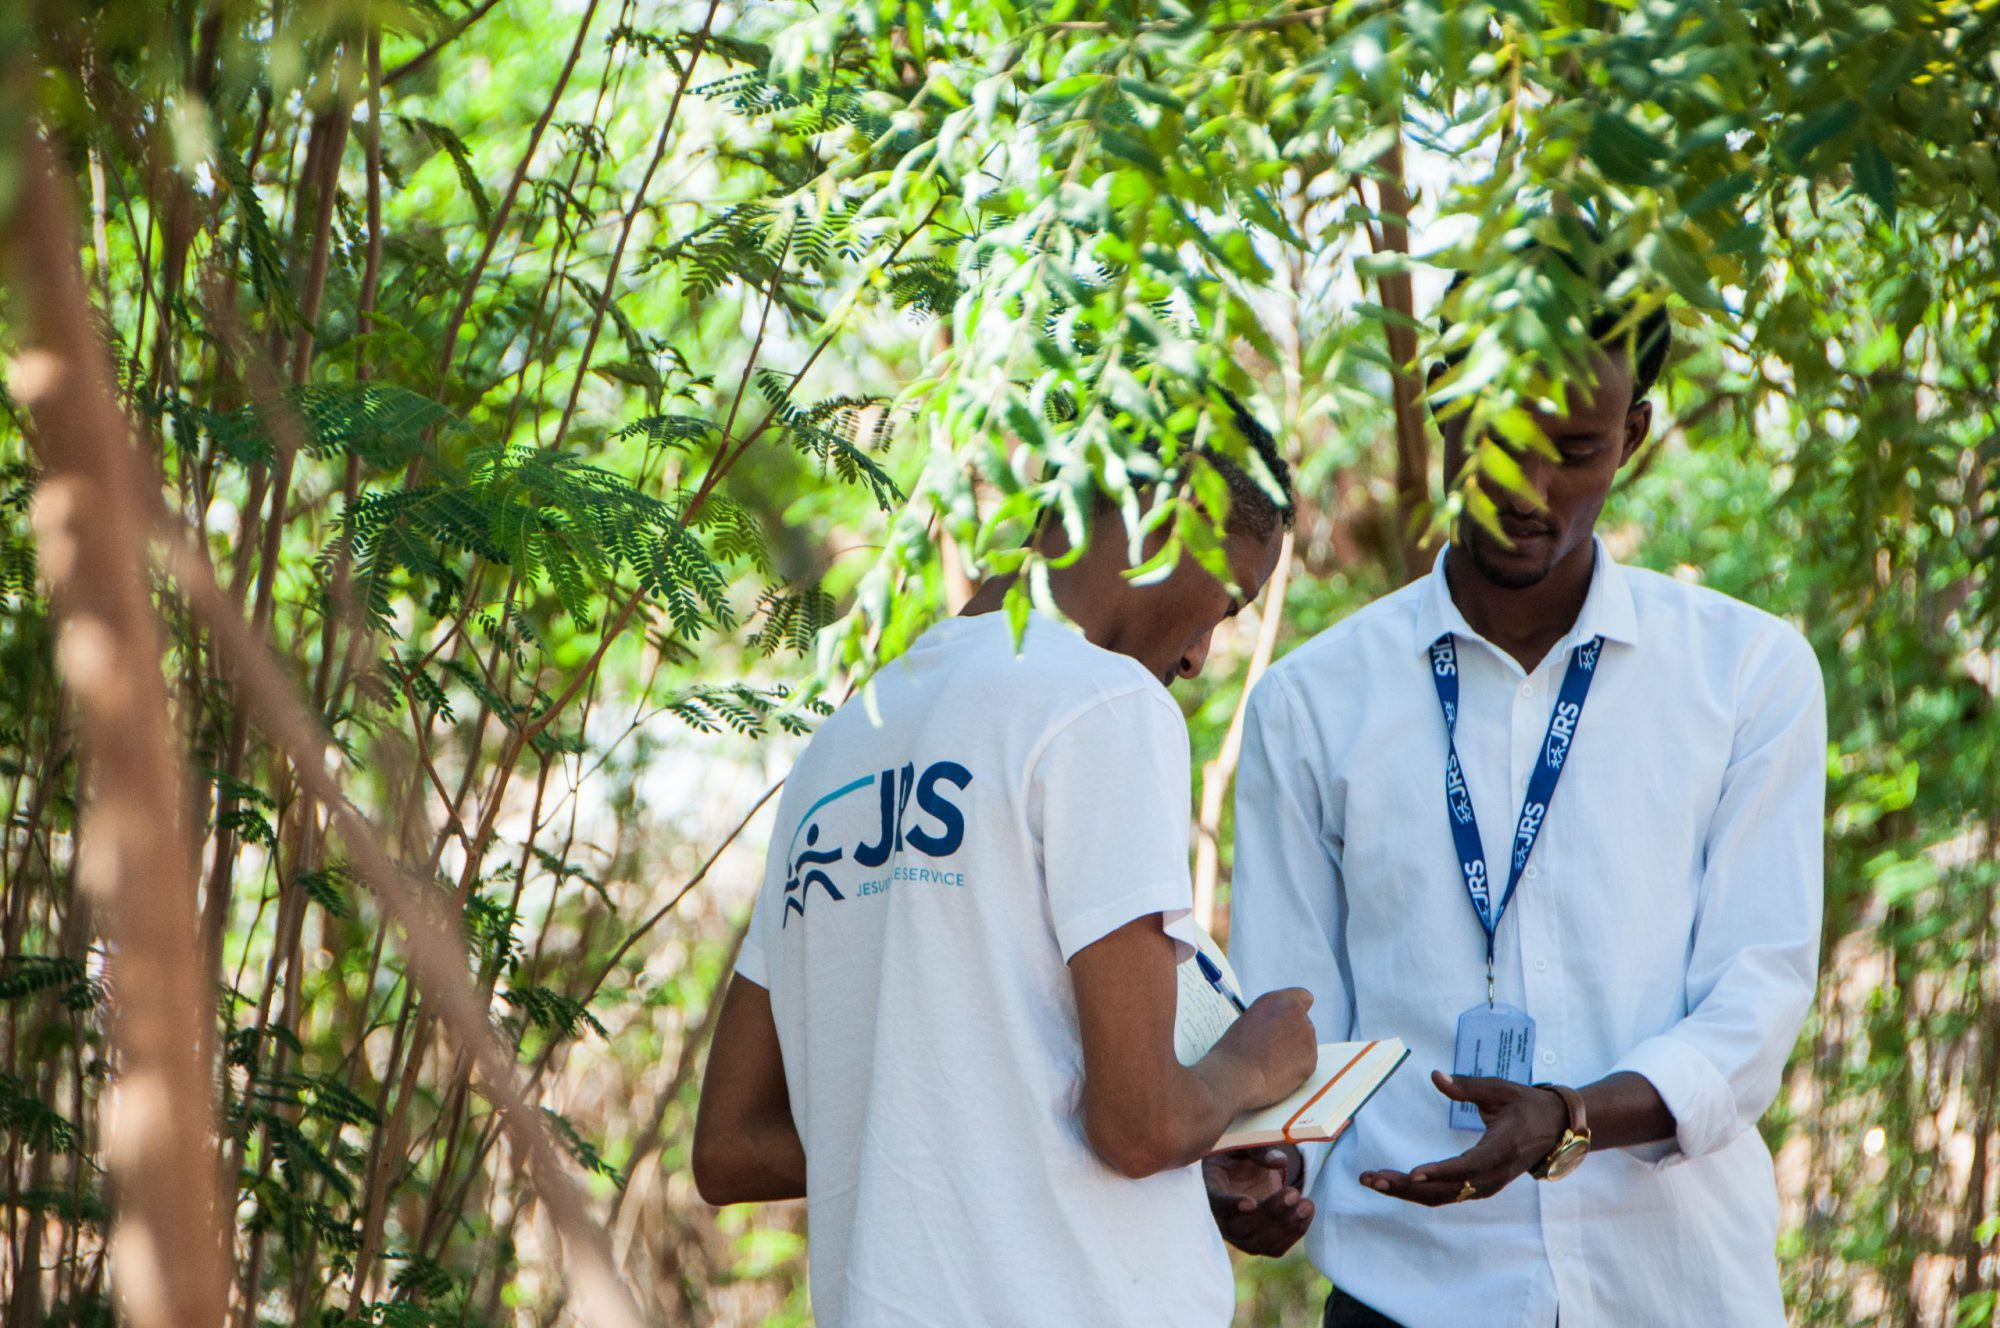 About JRS East Africa